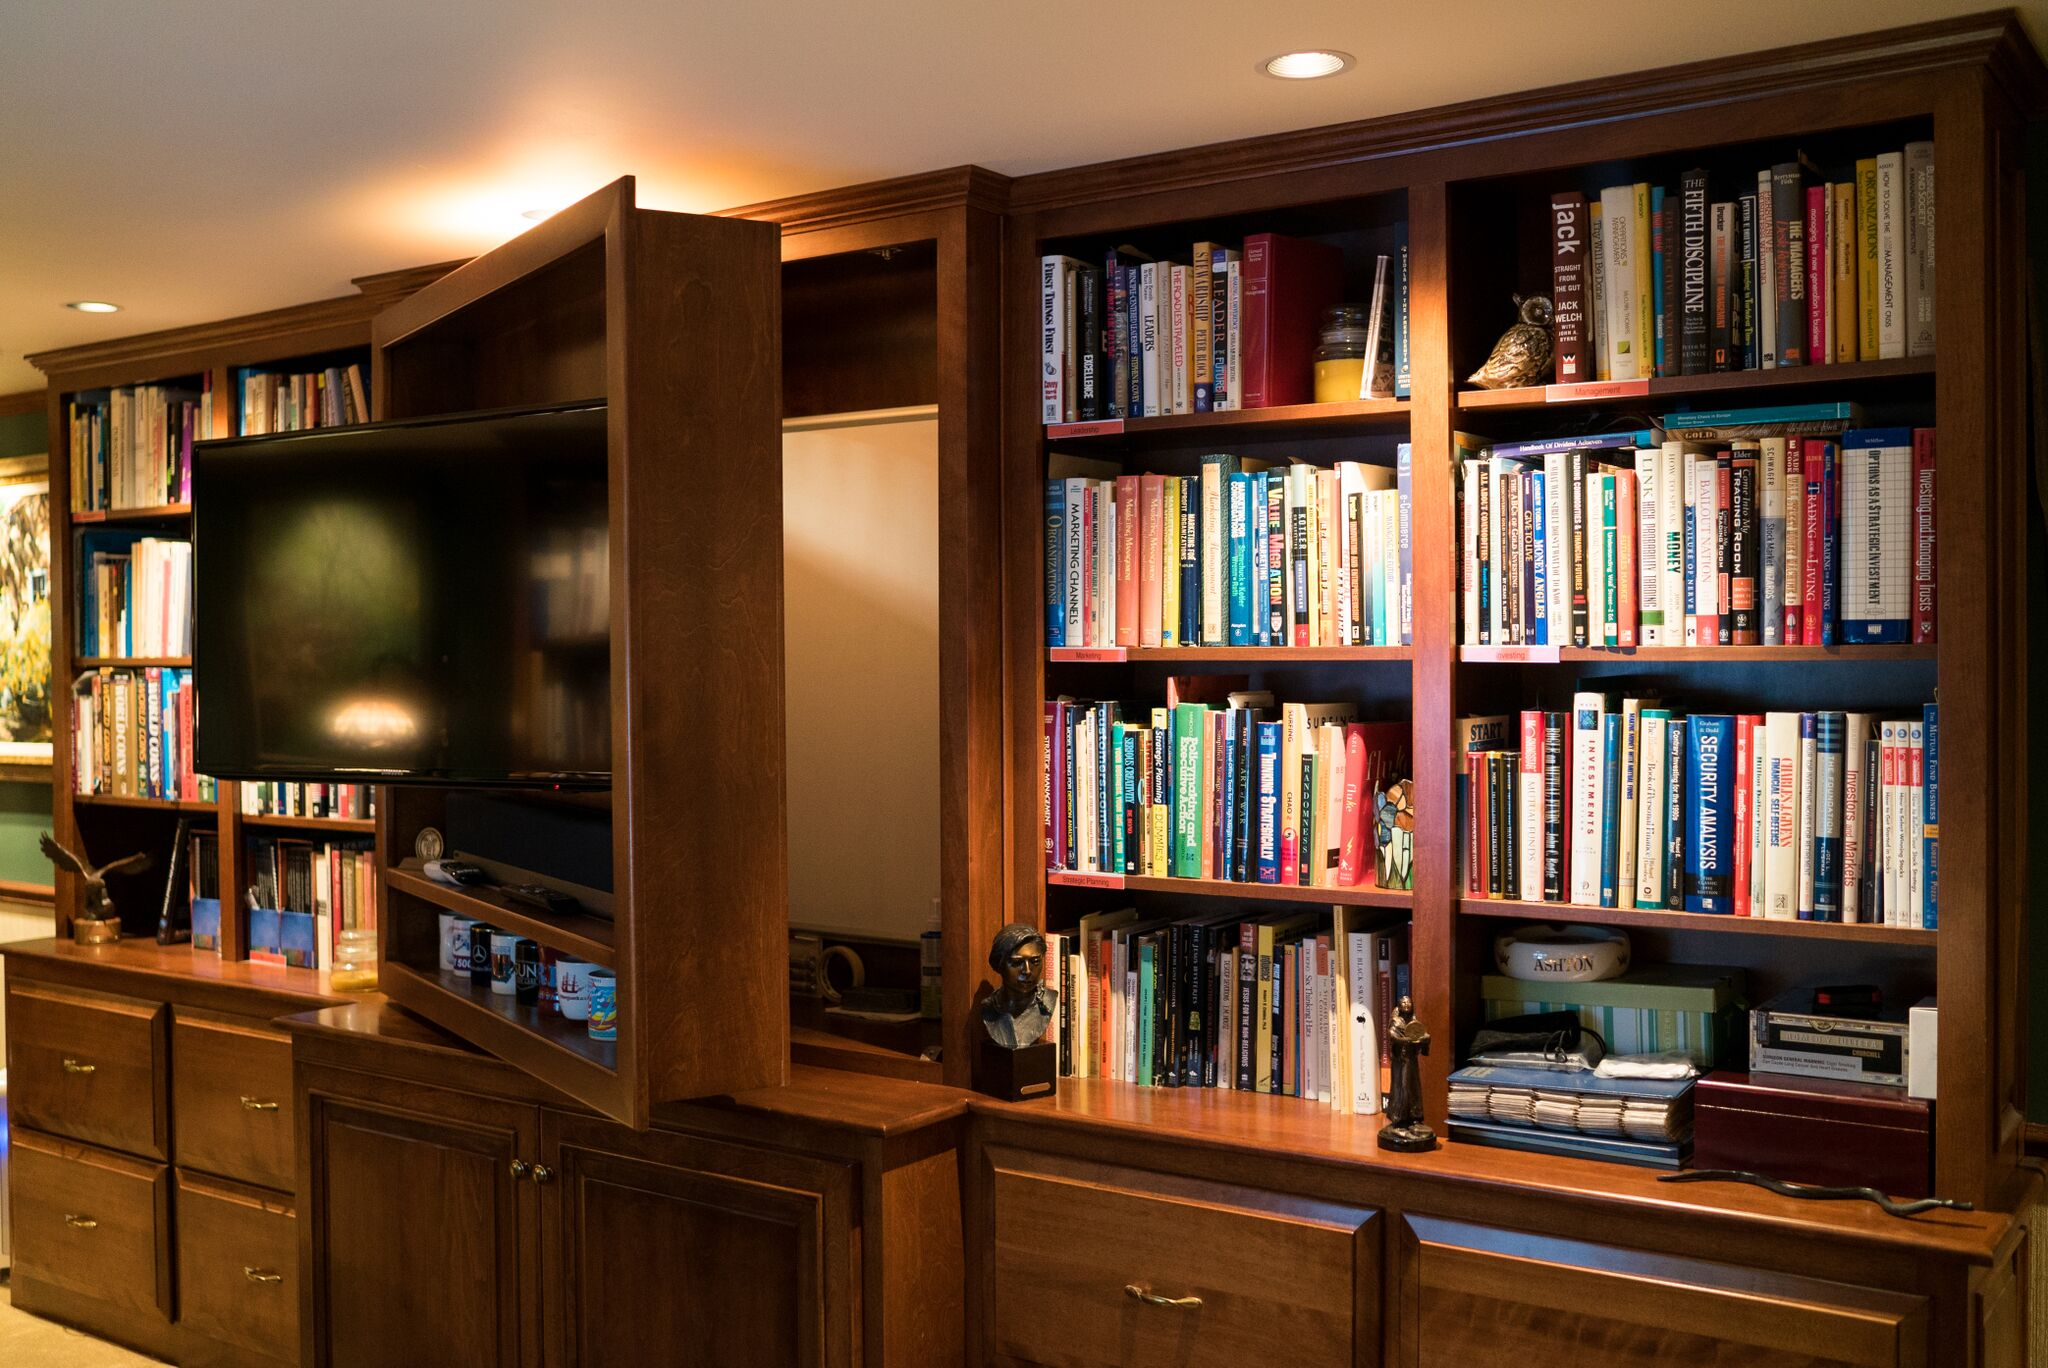 Mill Cabinet Shop Custom Designs, Builds And Installs Built In Bookshelves  To Suit Your Exact Parameters And Needs. Our On Site Production Shop In ...